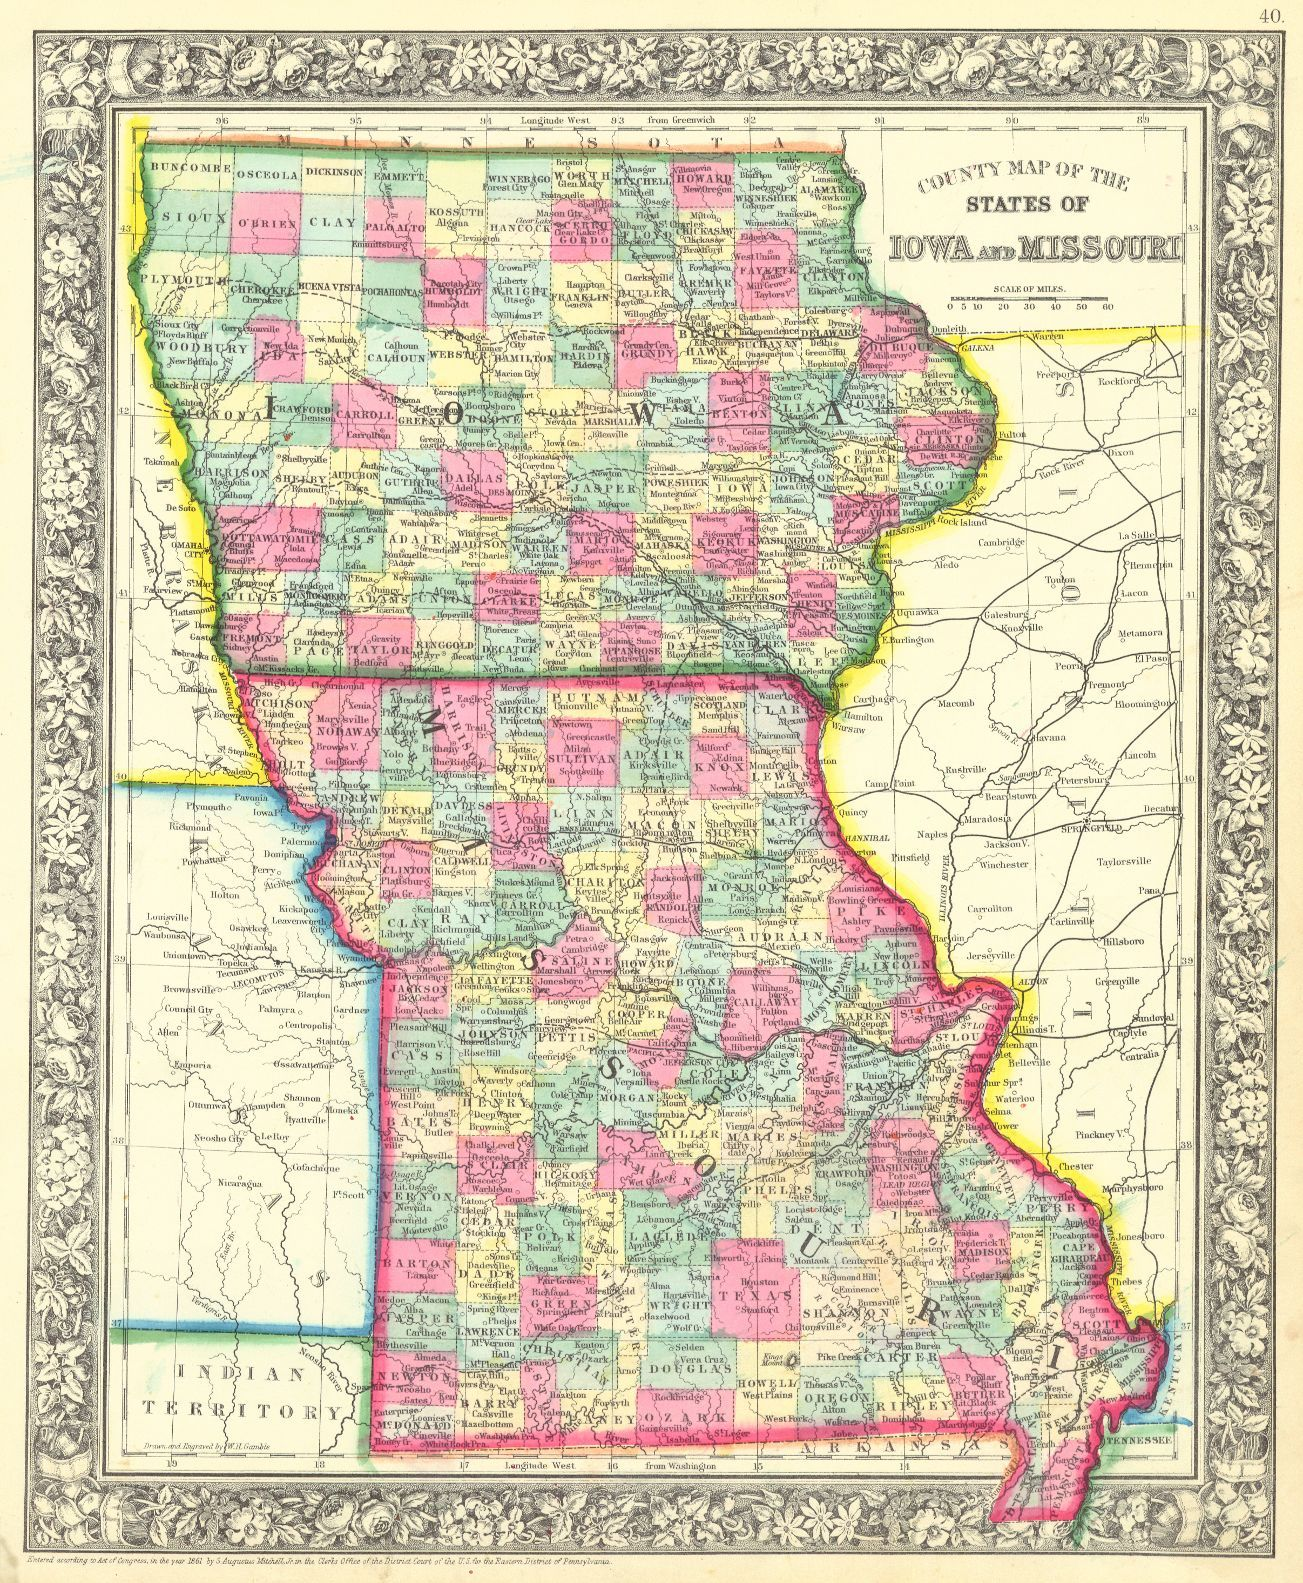 s in iowa map County Map Of The States Of Iowa And Missouri Gamble W H s in iowa map